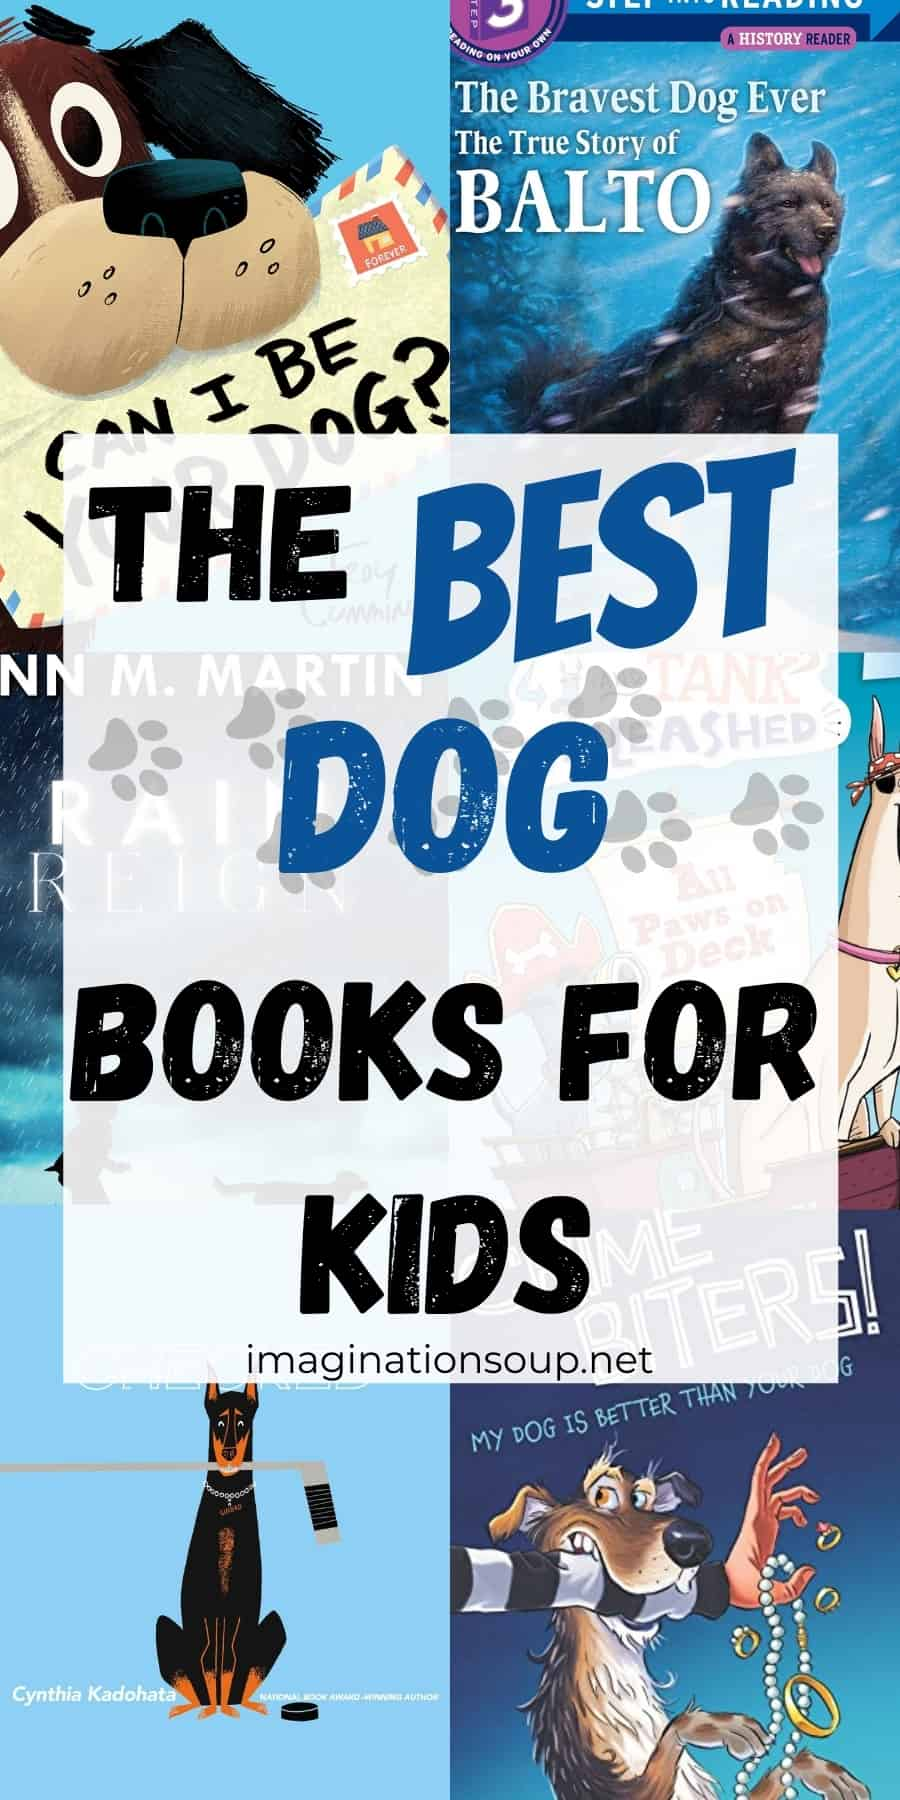 the best dog books for kids 2-12